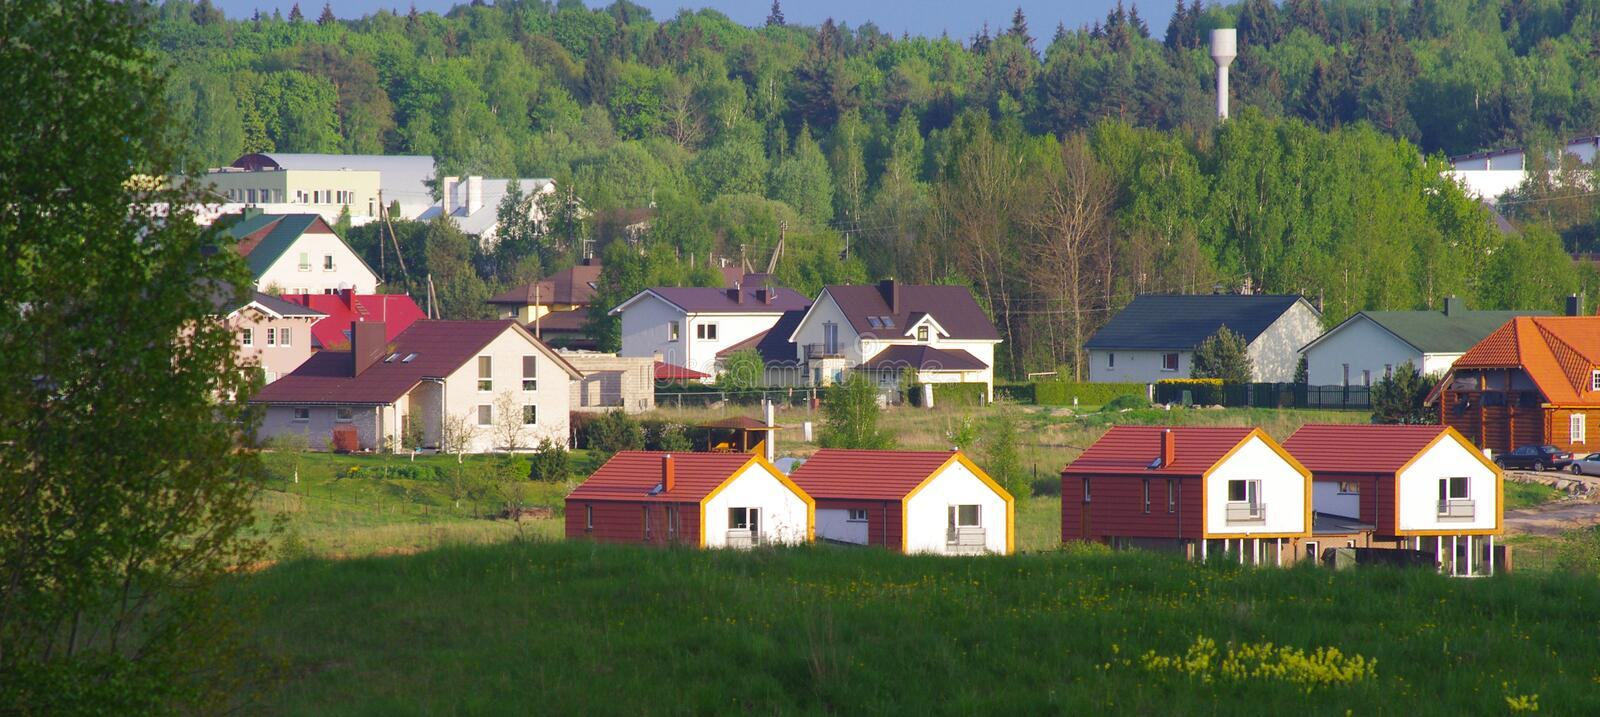 New built houses. Surrounded by nature, forest stock images